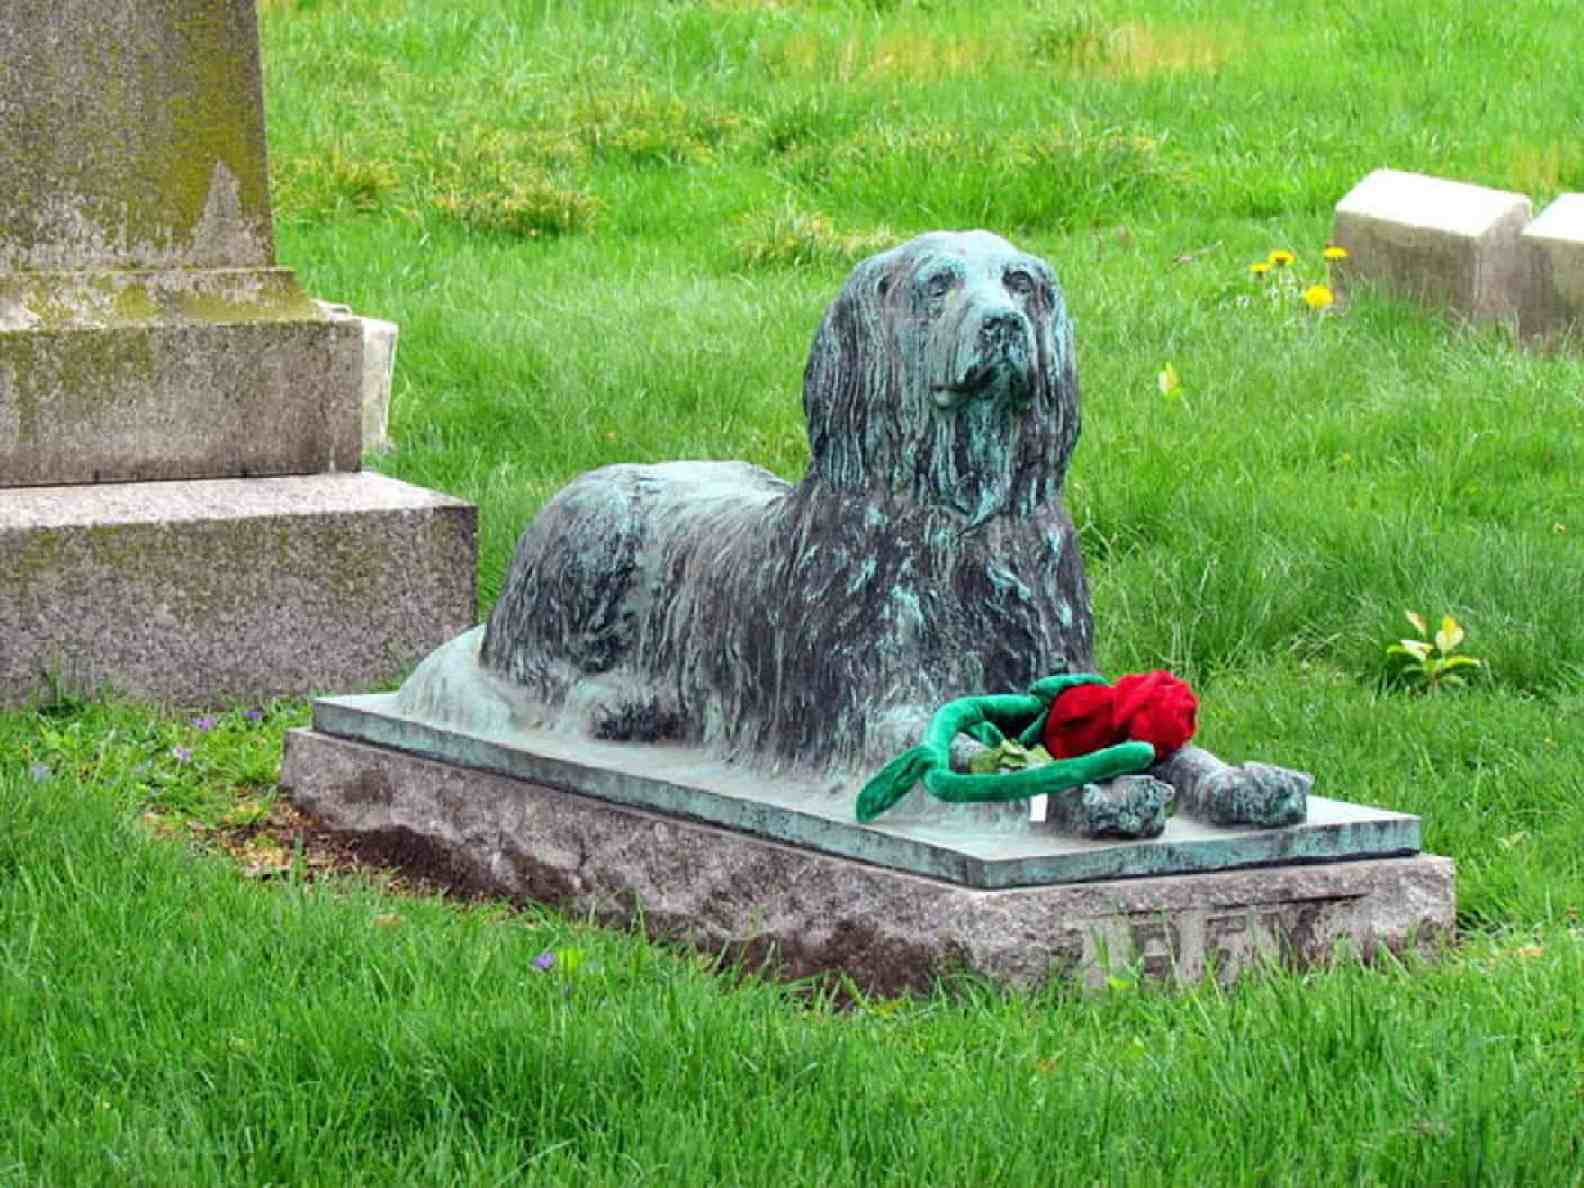 A statue of a dog at Green-Wood Cemetery that often gets toys